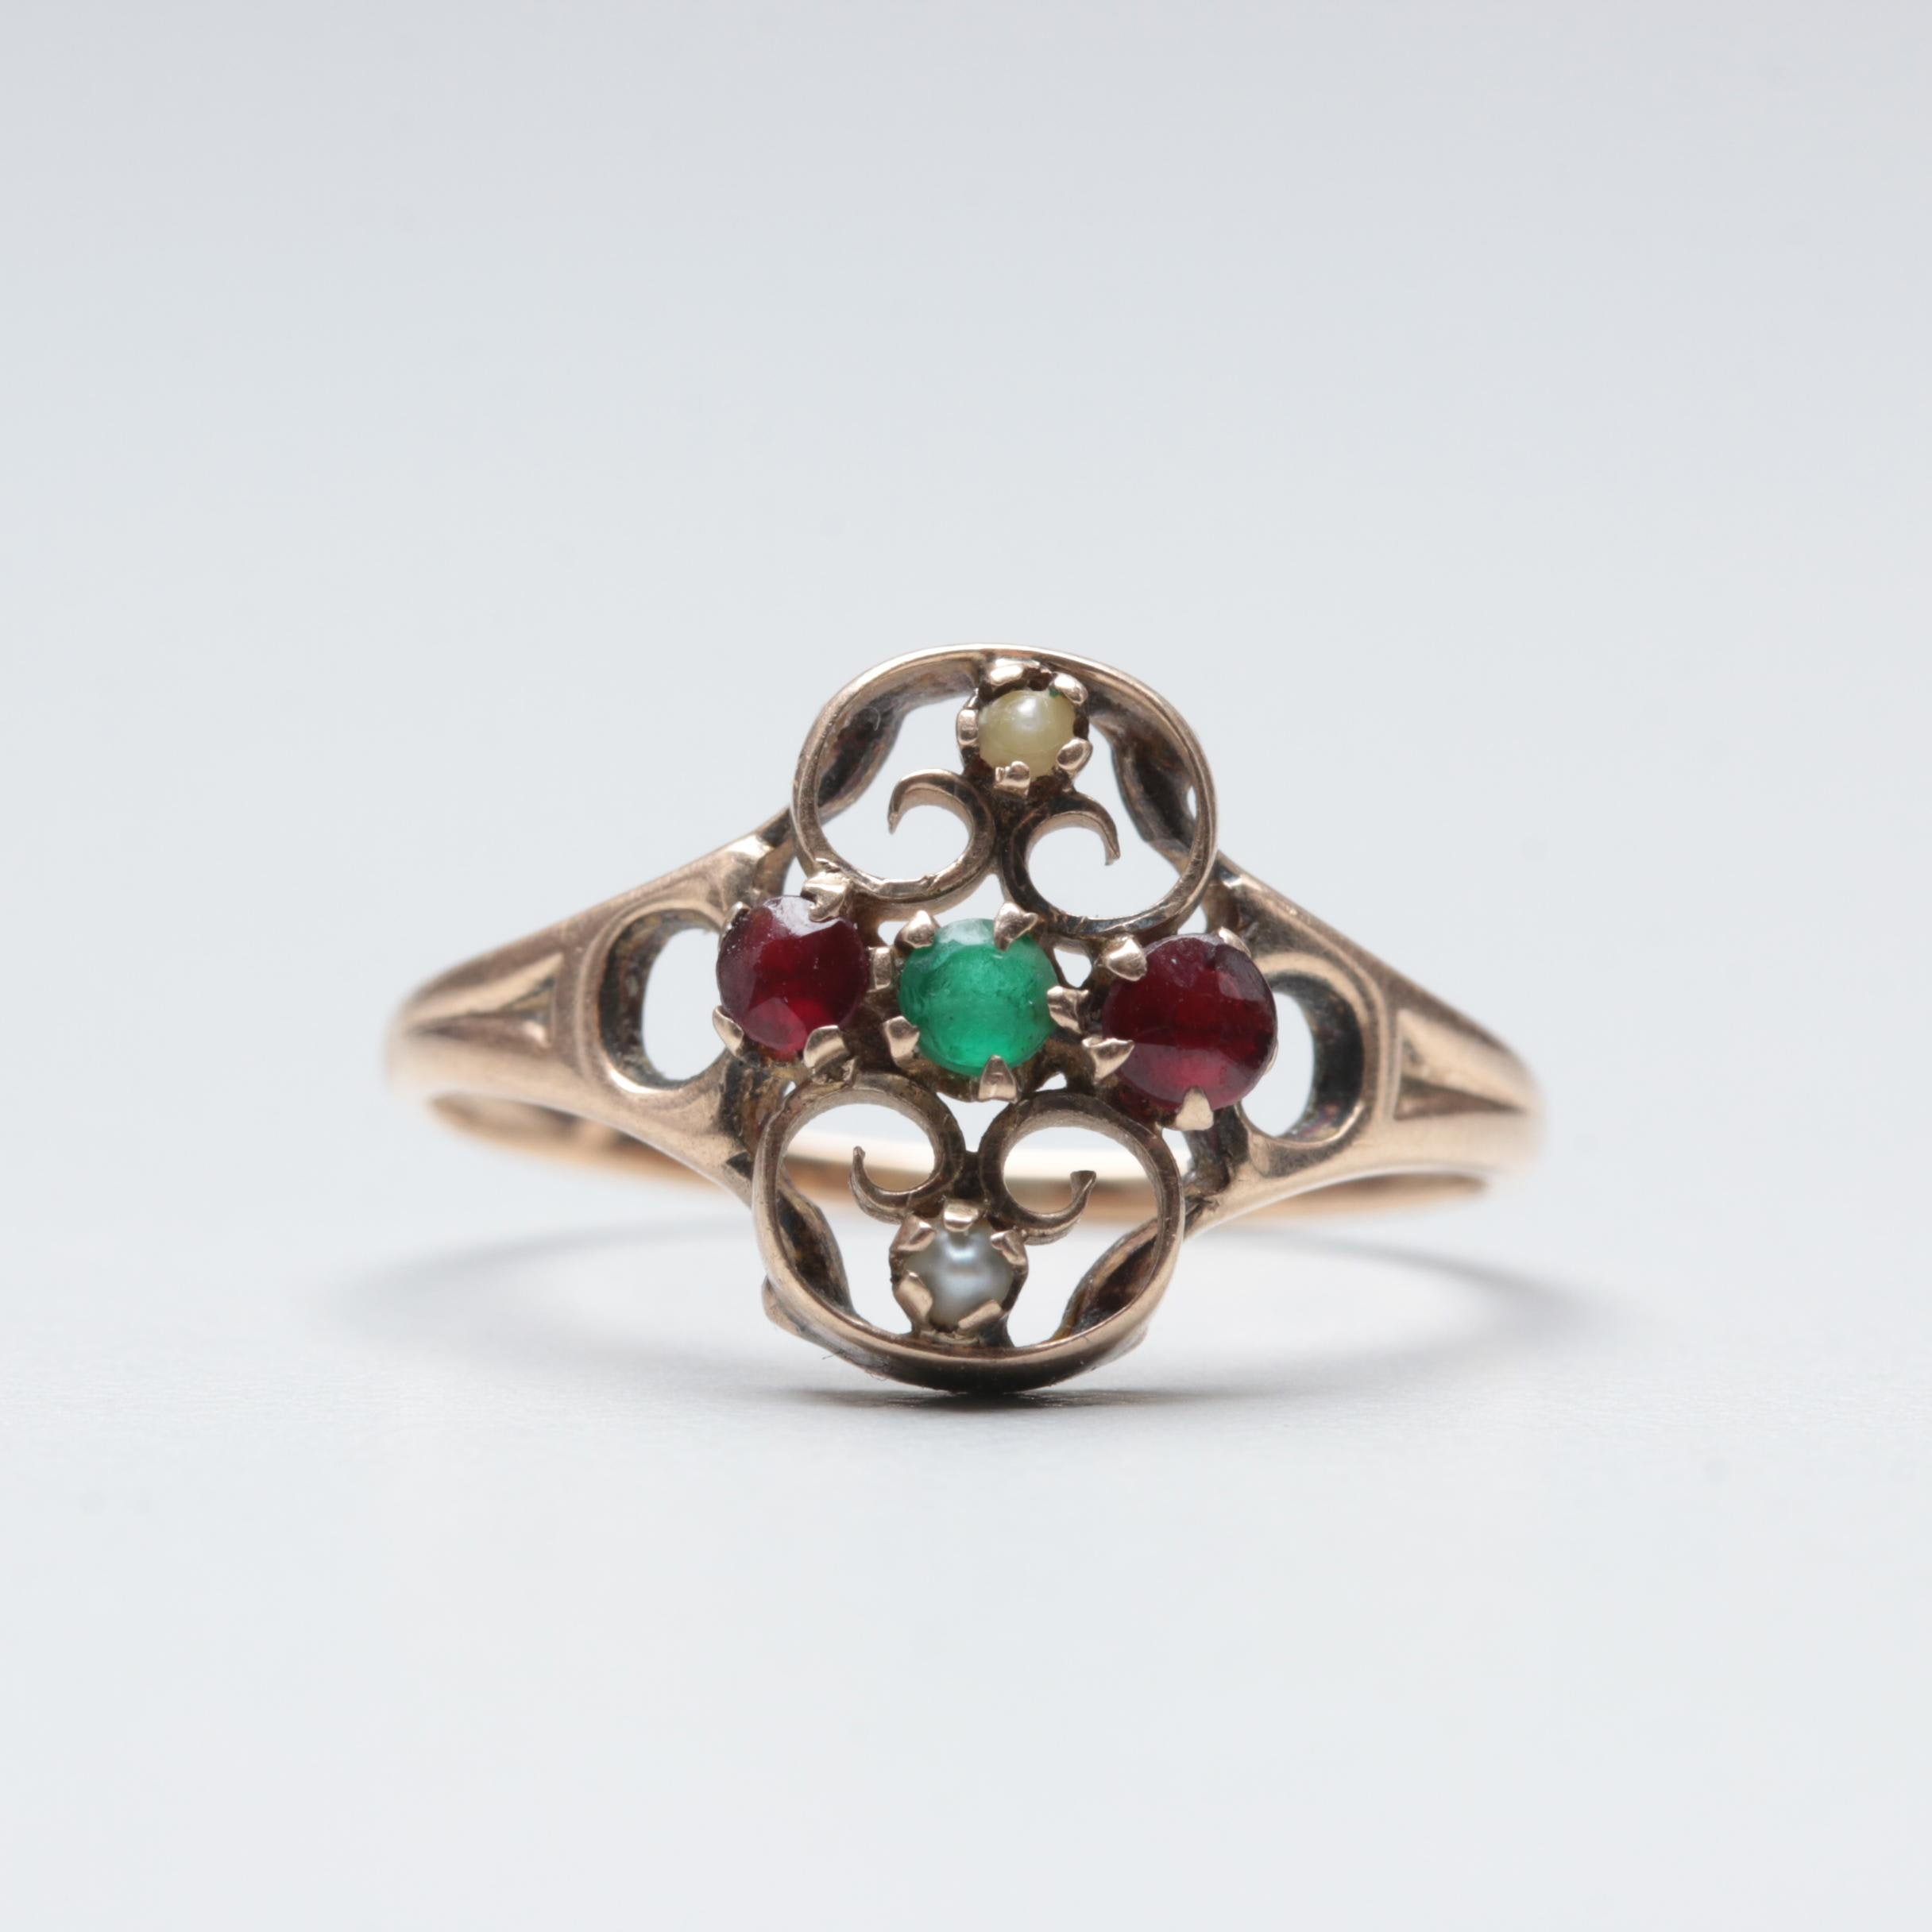 Victorian 10K Yellow Gold Glass, Garnet and Seed Pearl Ring